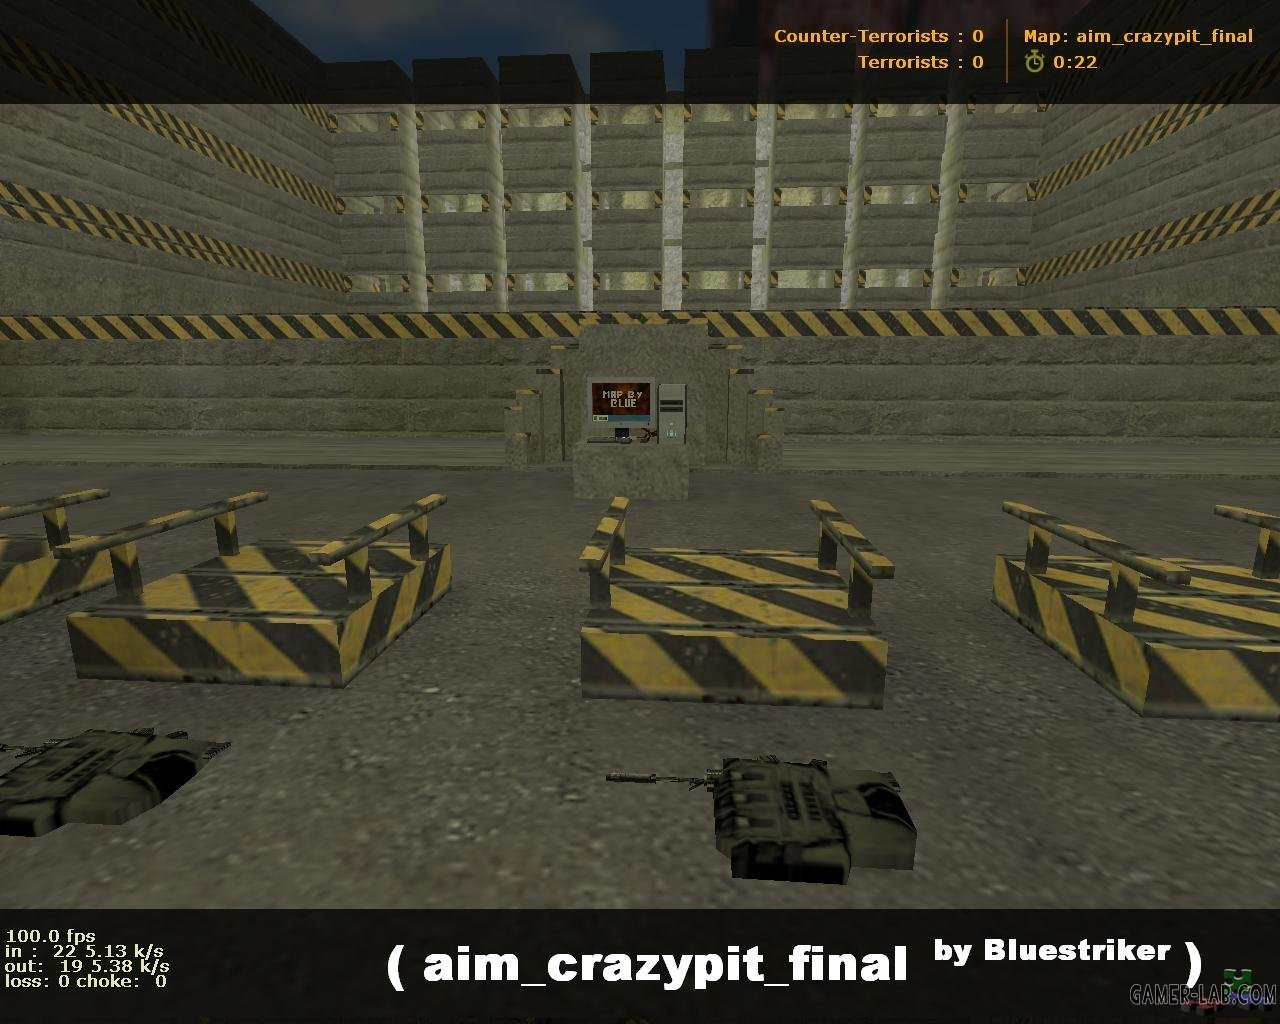 aim_crazypit_final